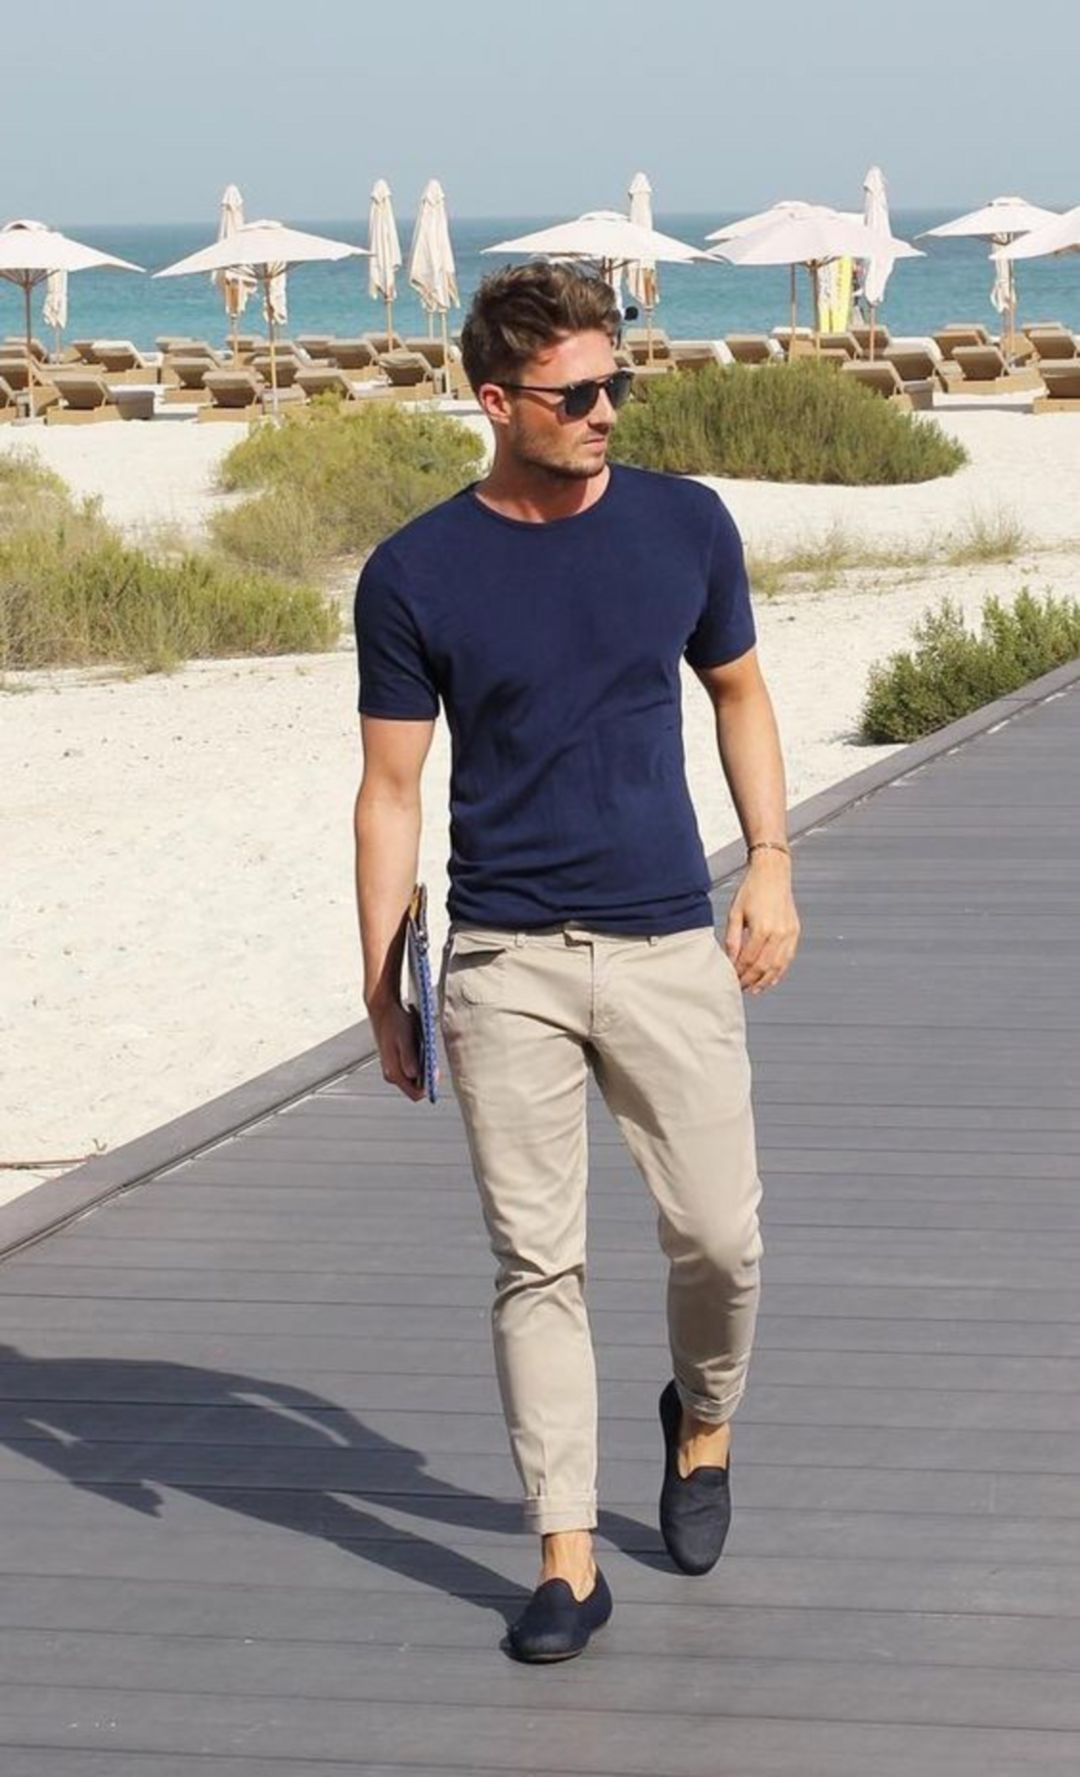 40 Smart Casual Fashion Ideas That Make Your Look Elegant Fashions Nowadays Smart Casual Menswear Smart Casual Menswear Summer Mens Casual Outfits [ 1777 x 1080 Pixel ]